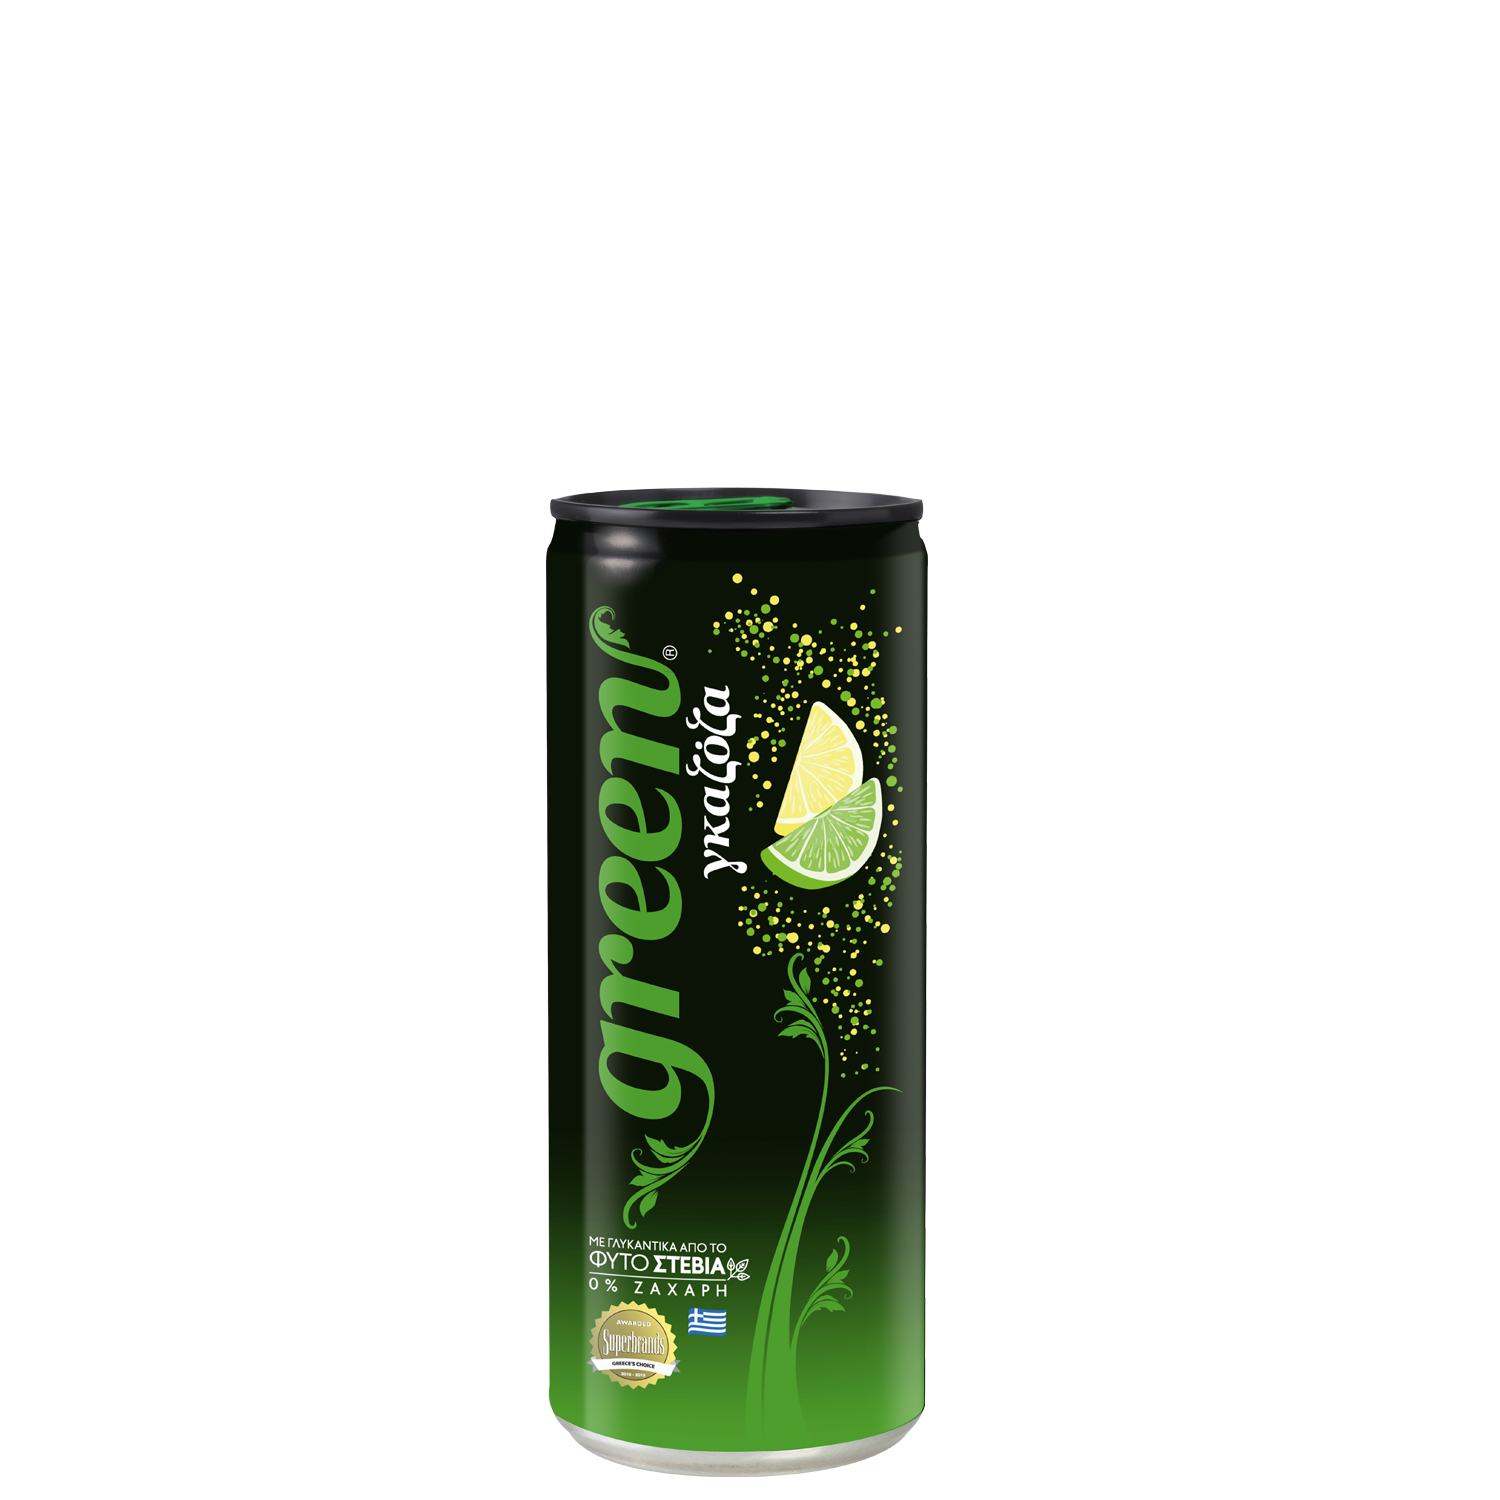 Green Mountain - 330ml - Can